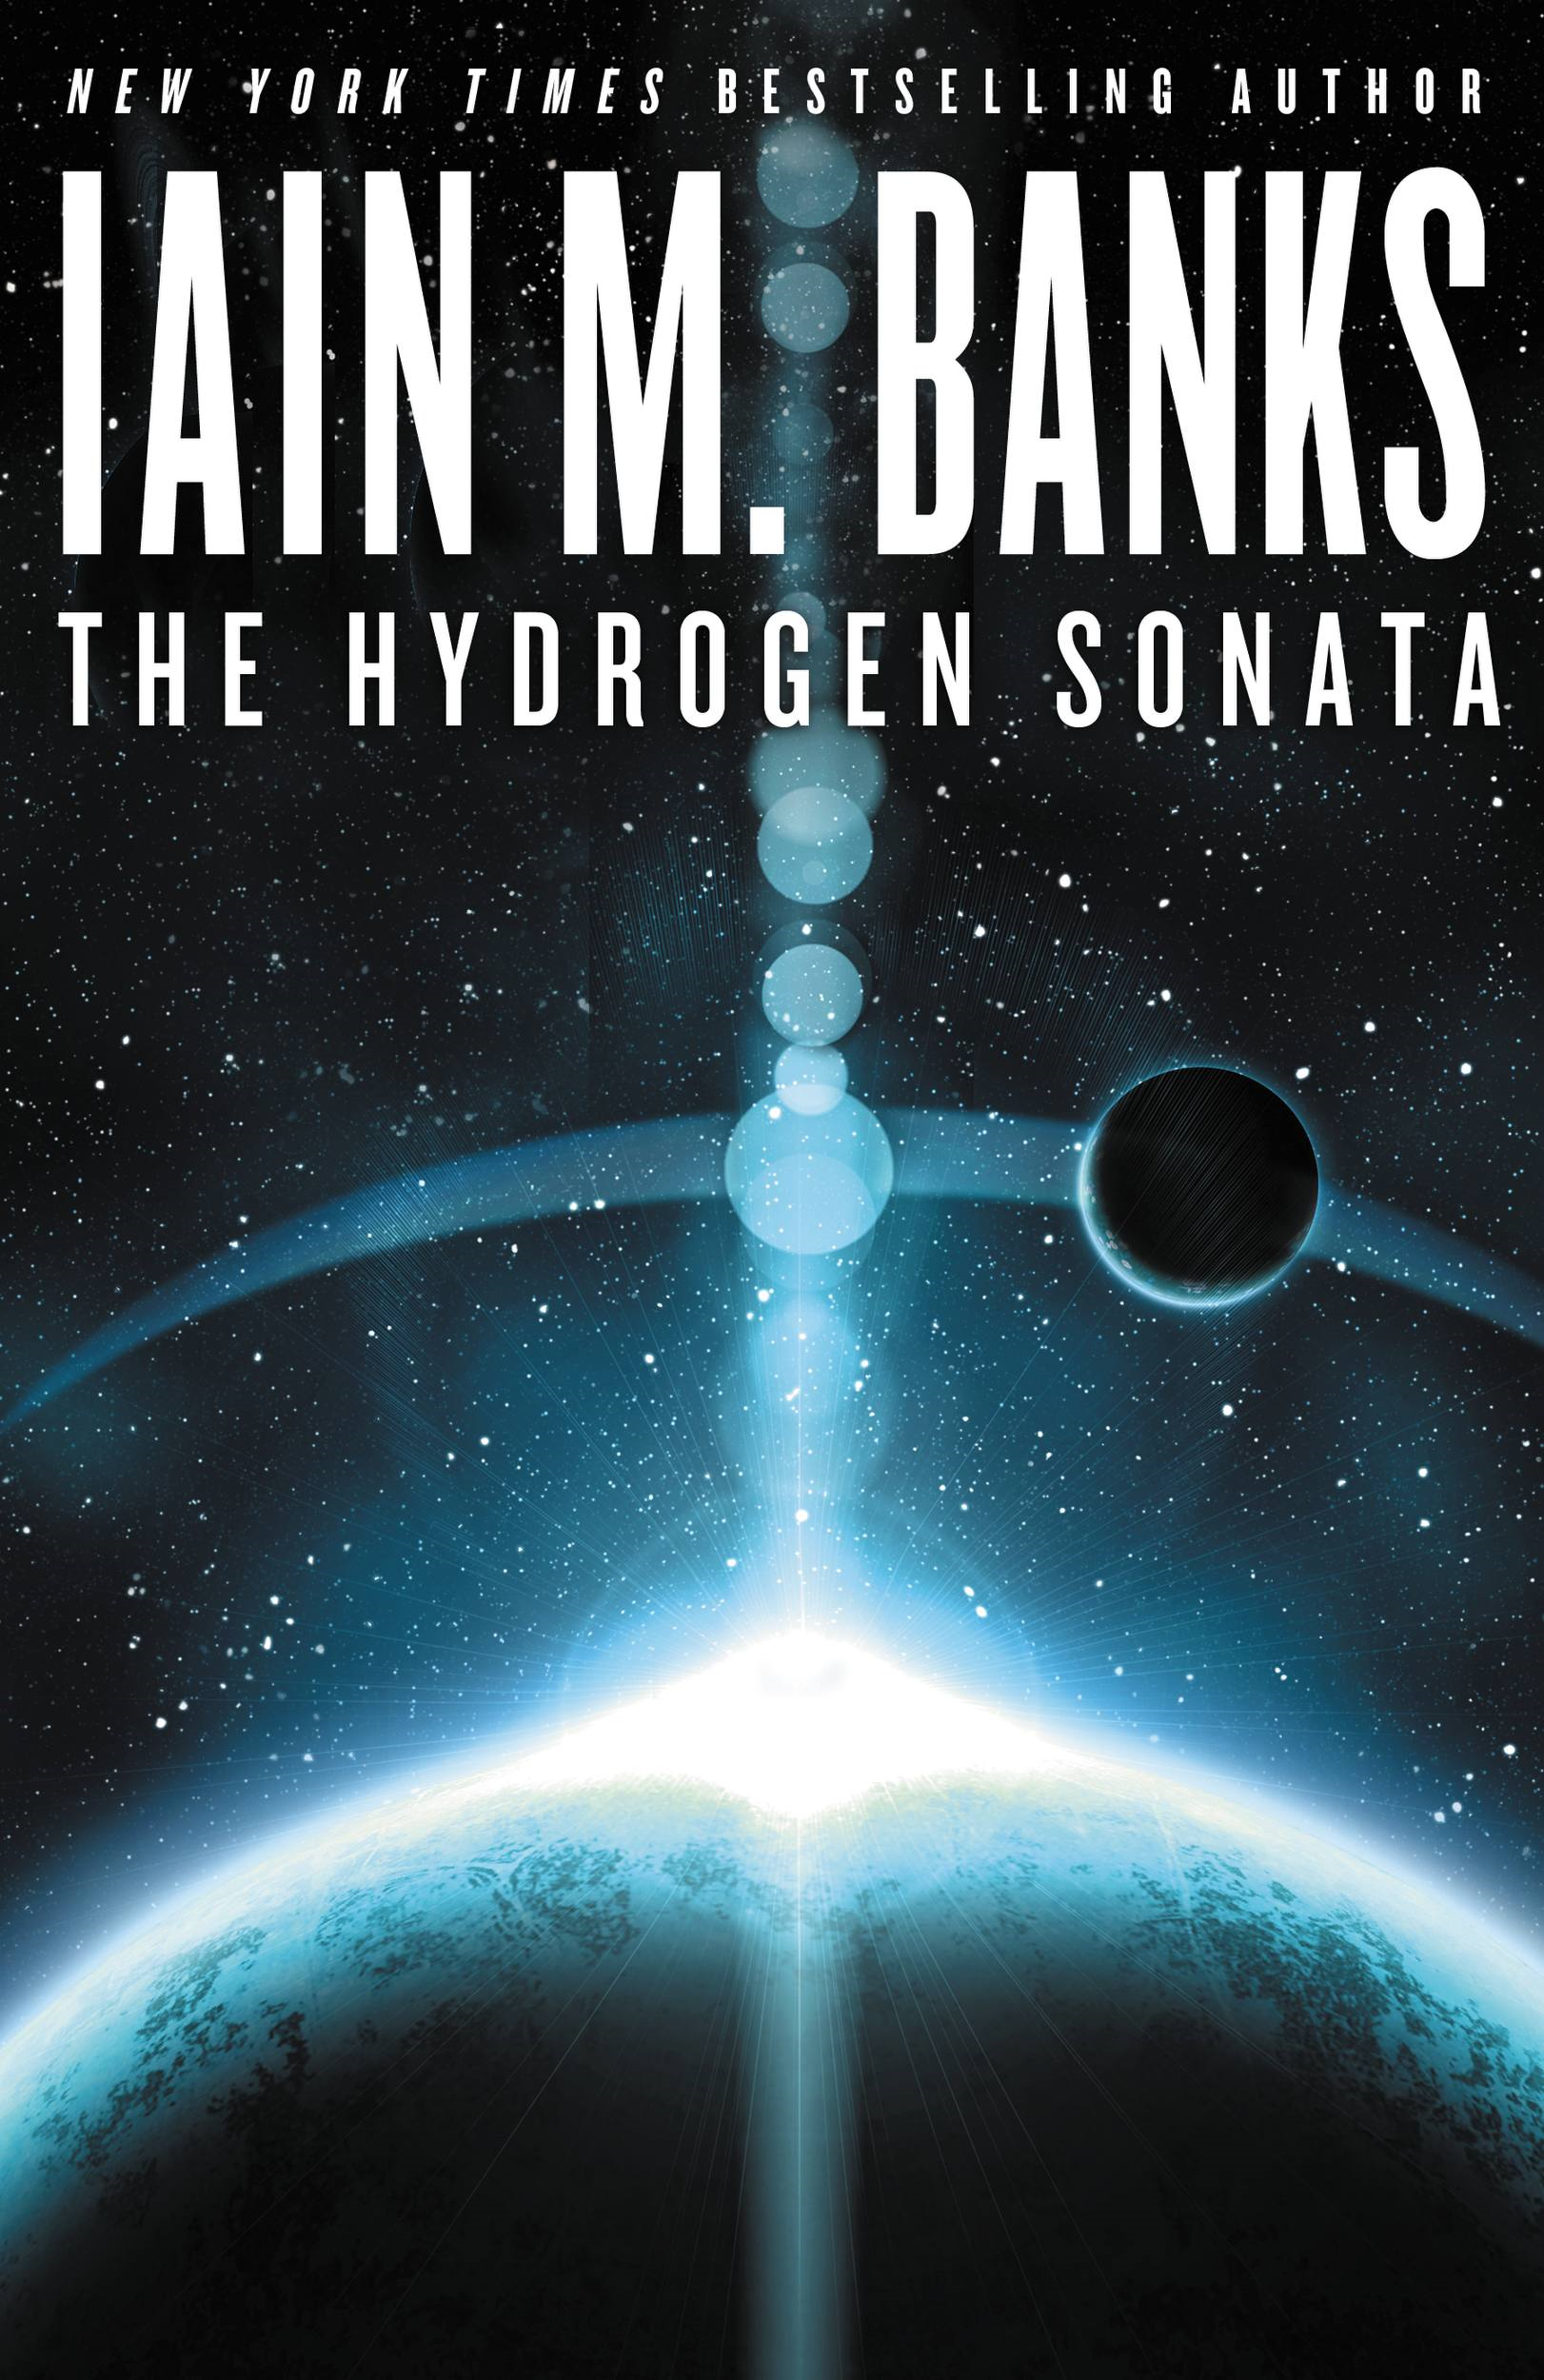 The Hydrogen Sonata By: Iain M. Banks